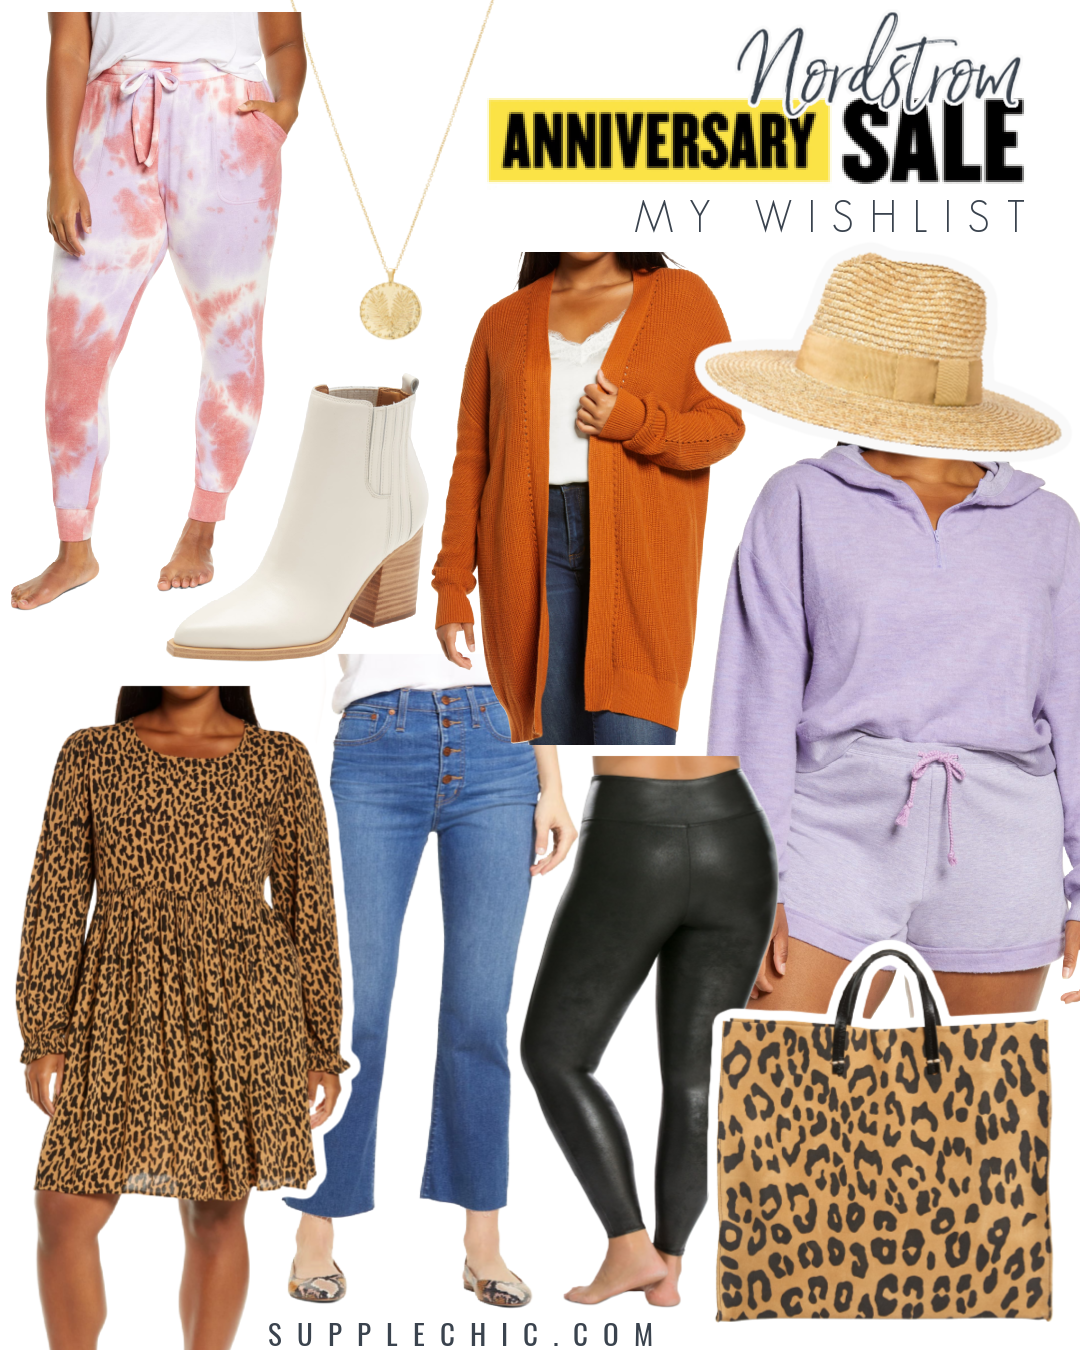 ultimate guide to the Nordstrom Anniversary Sale Curvy + Plus size Edition